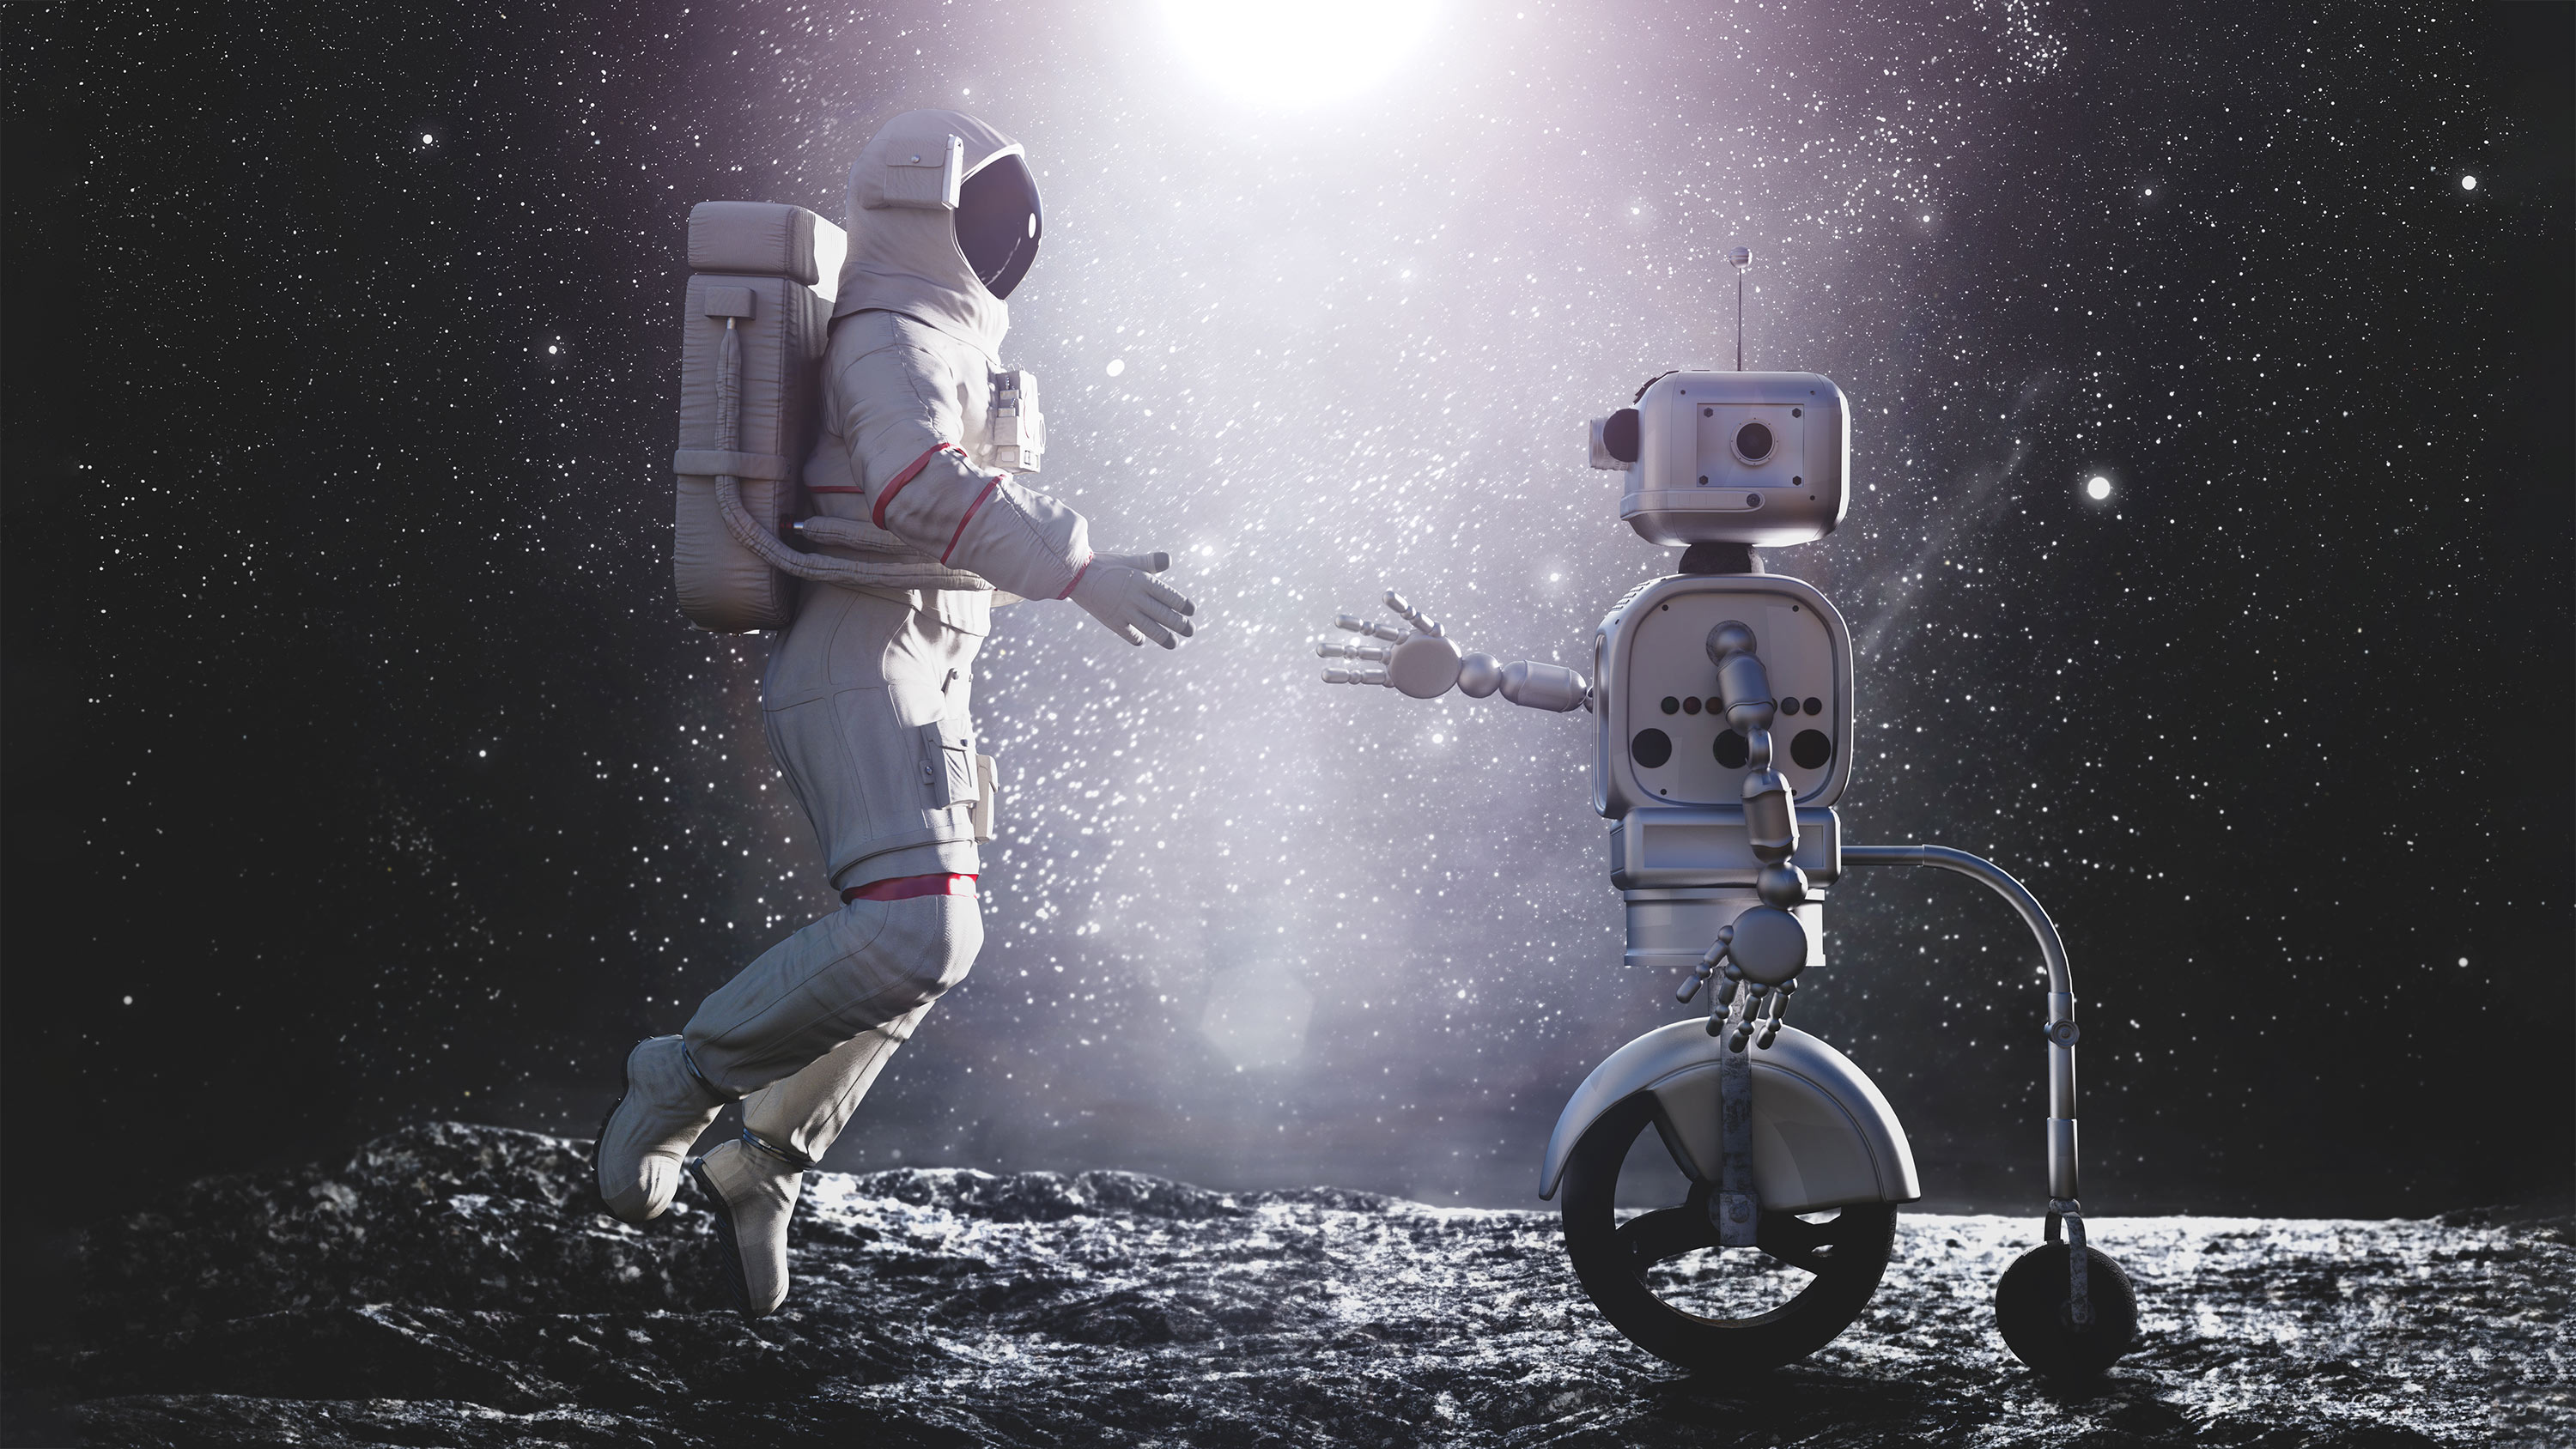 Rover Ai helping and astronaut